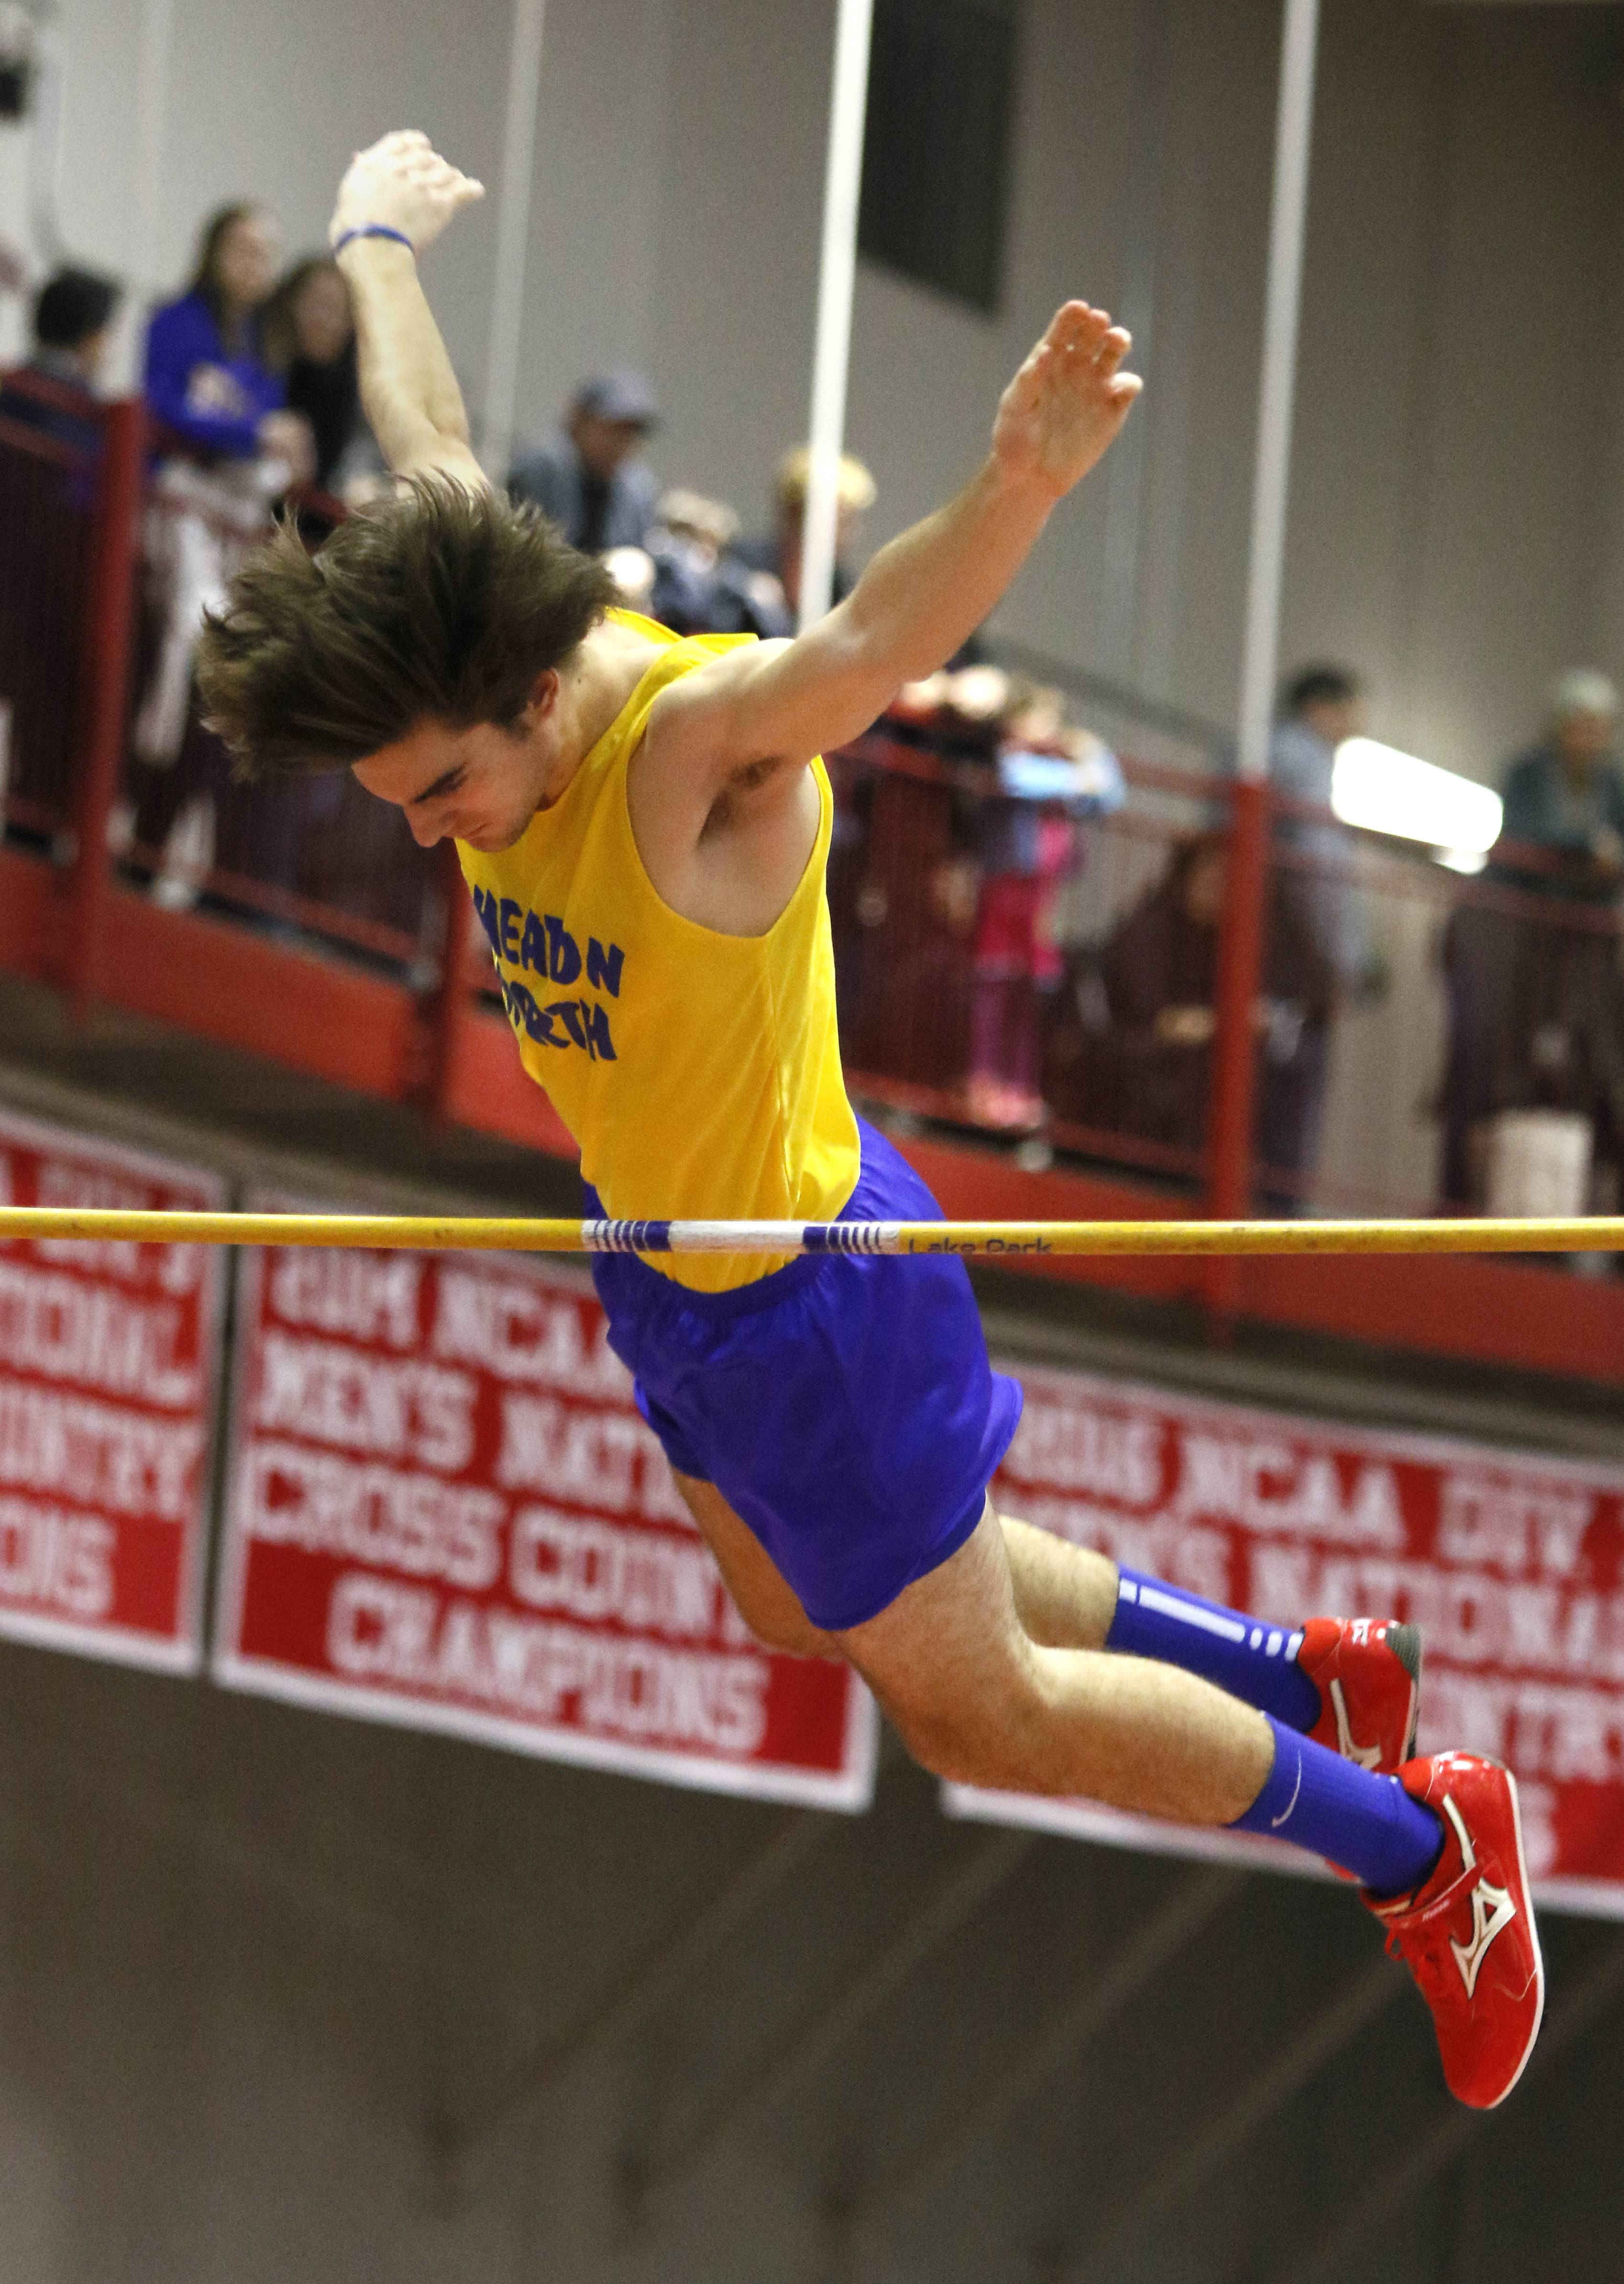 Wheaton North's Will Aguiar gets over the bar during the pole vault competition at the DuPage Valley Conference boys indoor track meet at North Central College.